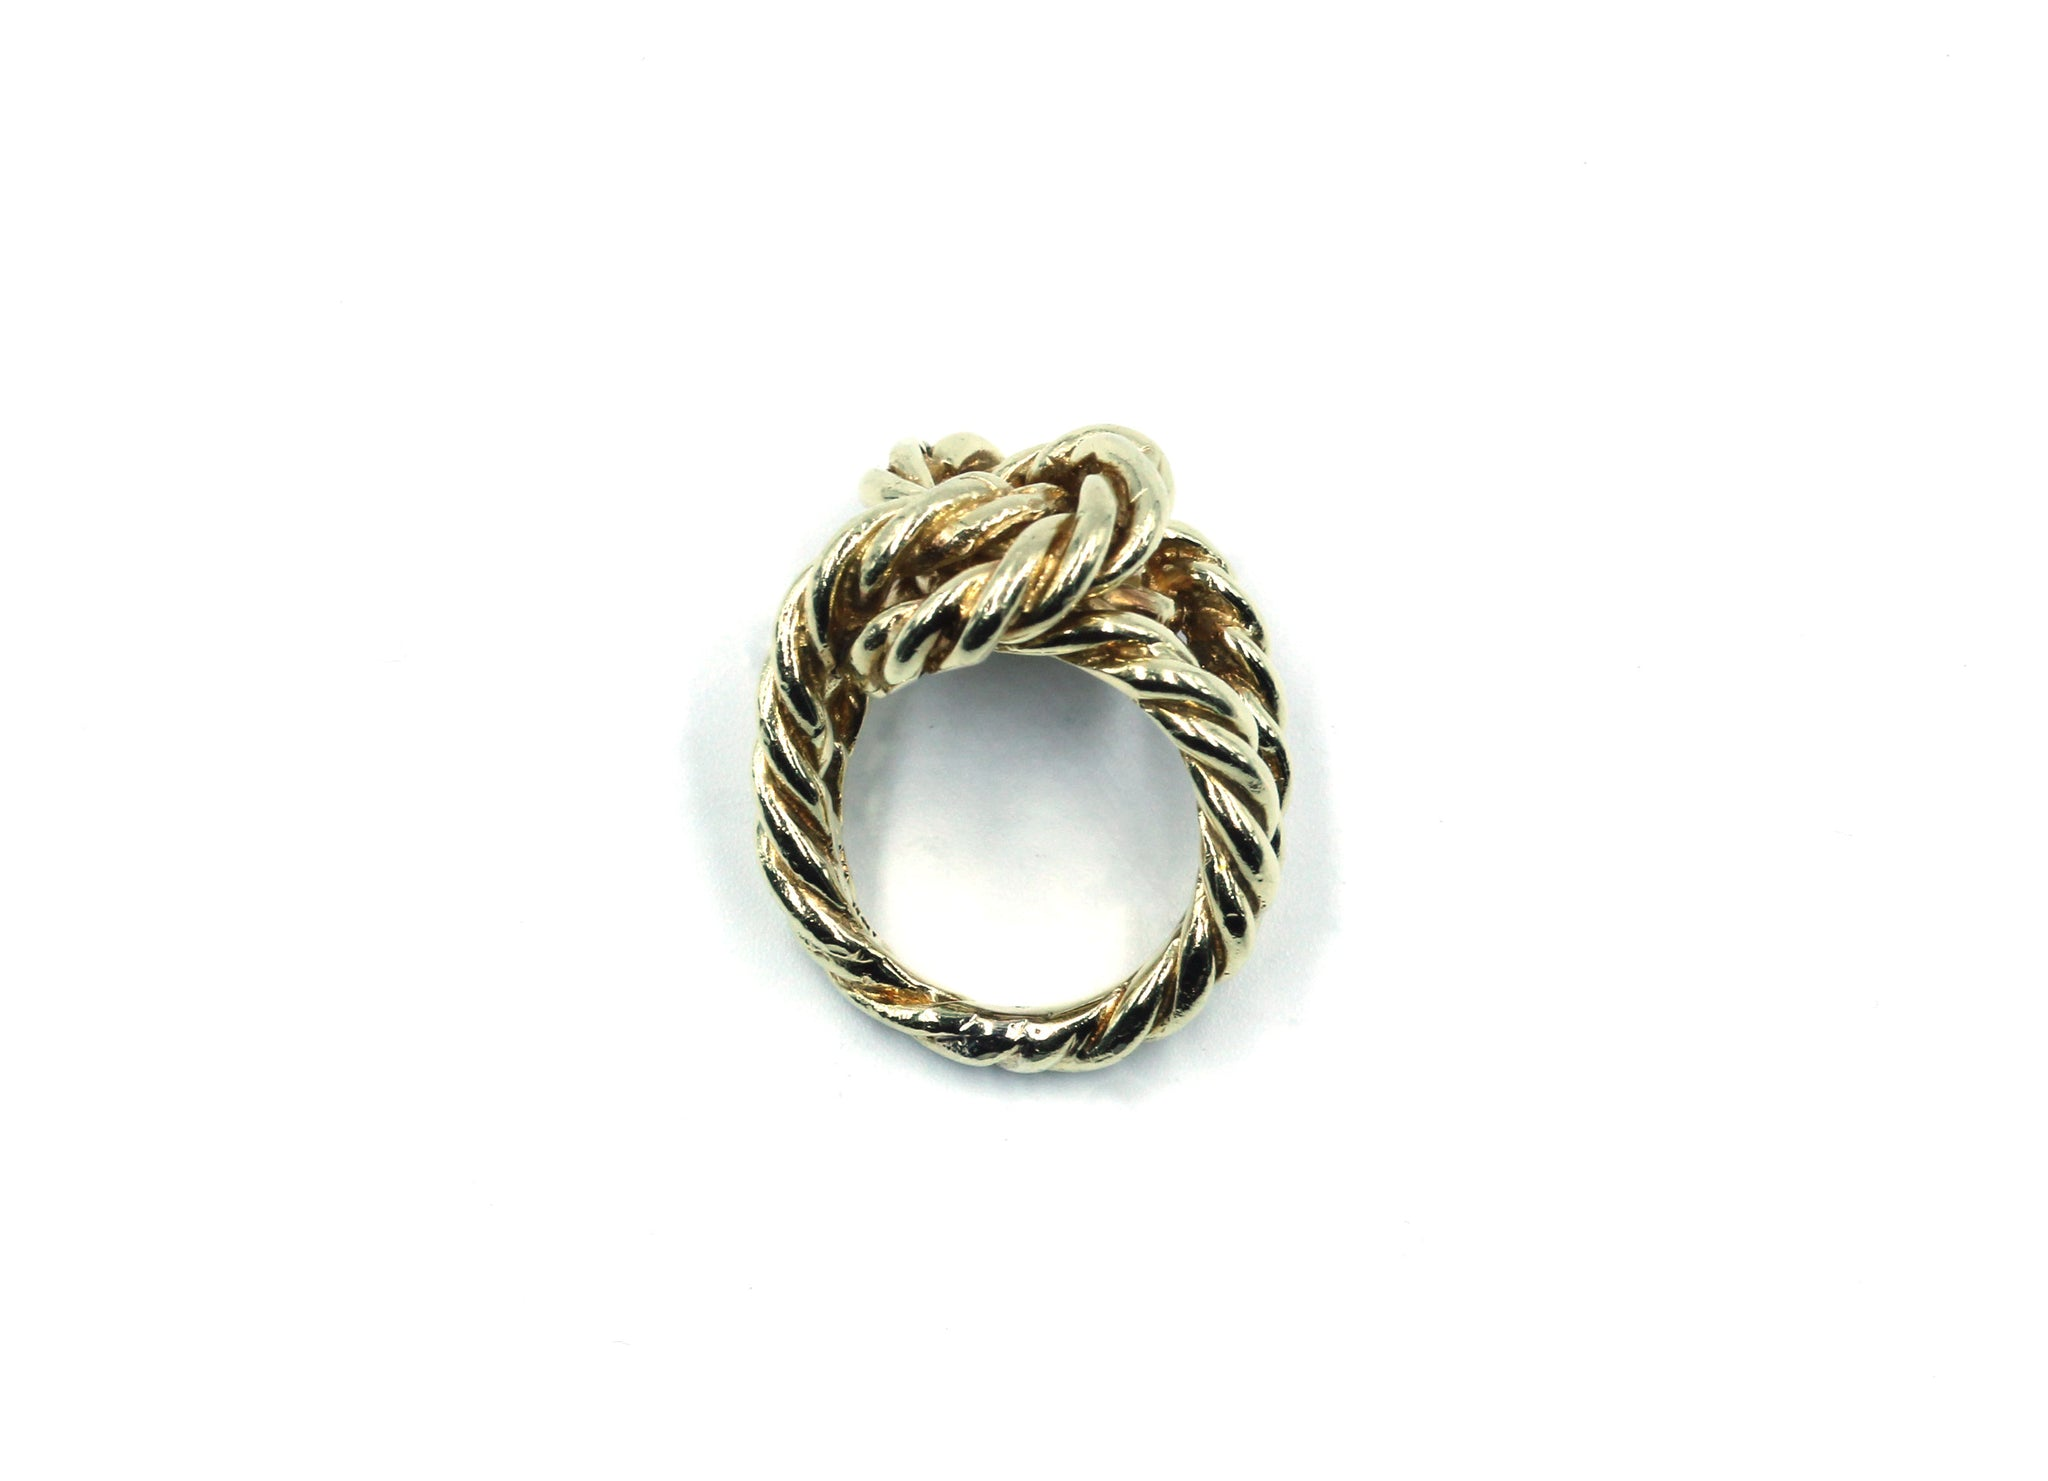 Vintage Gold Knot Ring